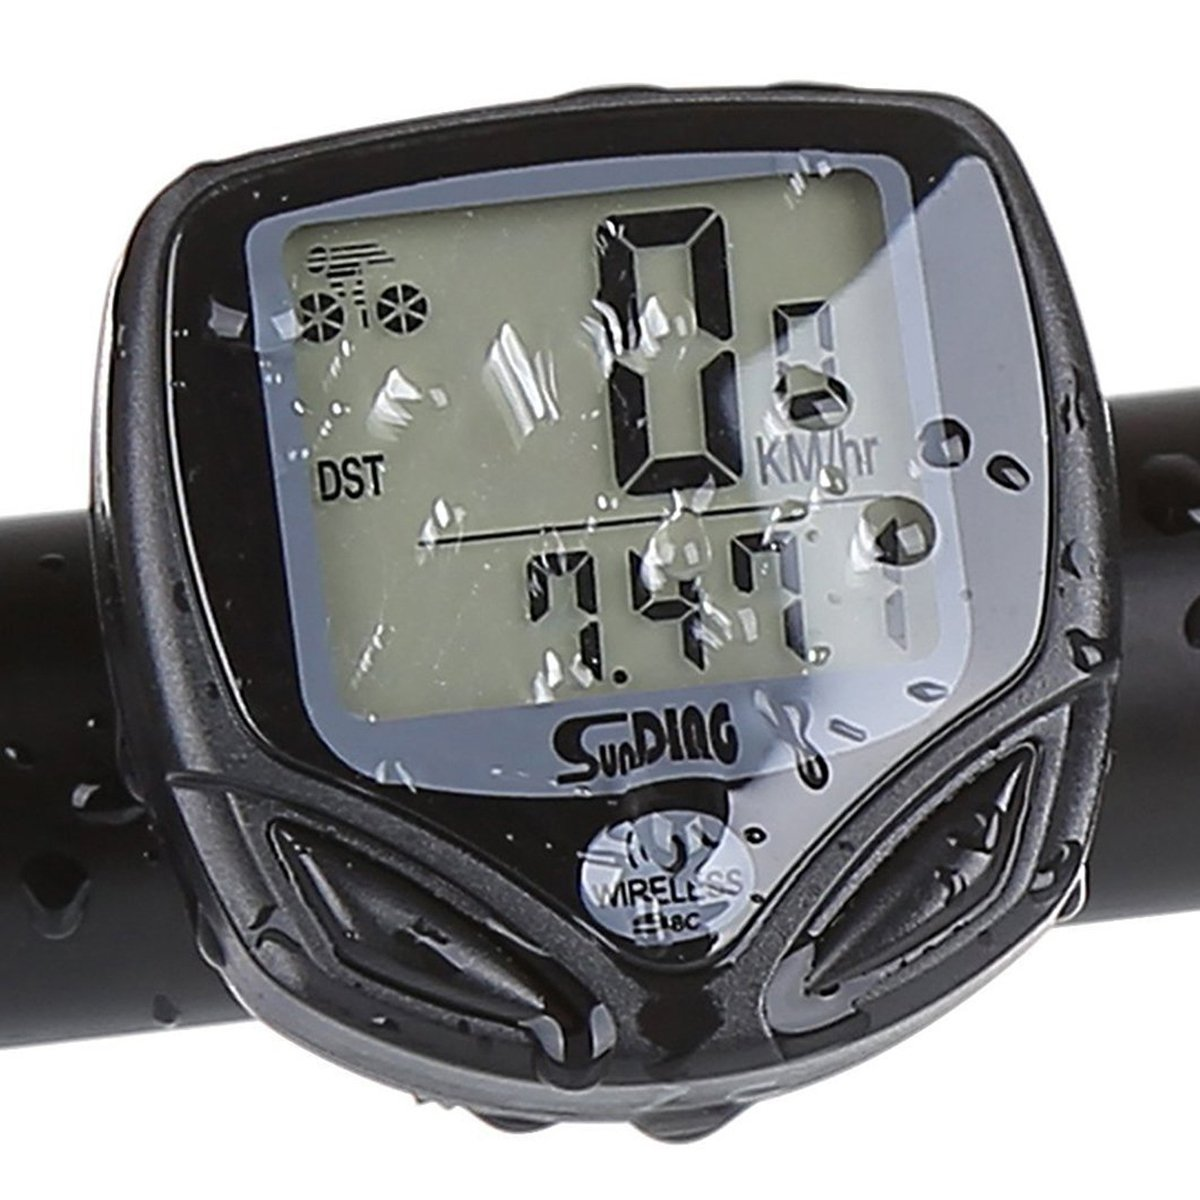 LUPO Wireless Bike Computer Waterproof Speedometer Odometer with Backlight LCD Display Tracking Distance Average Speed Time